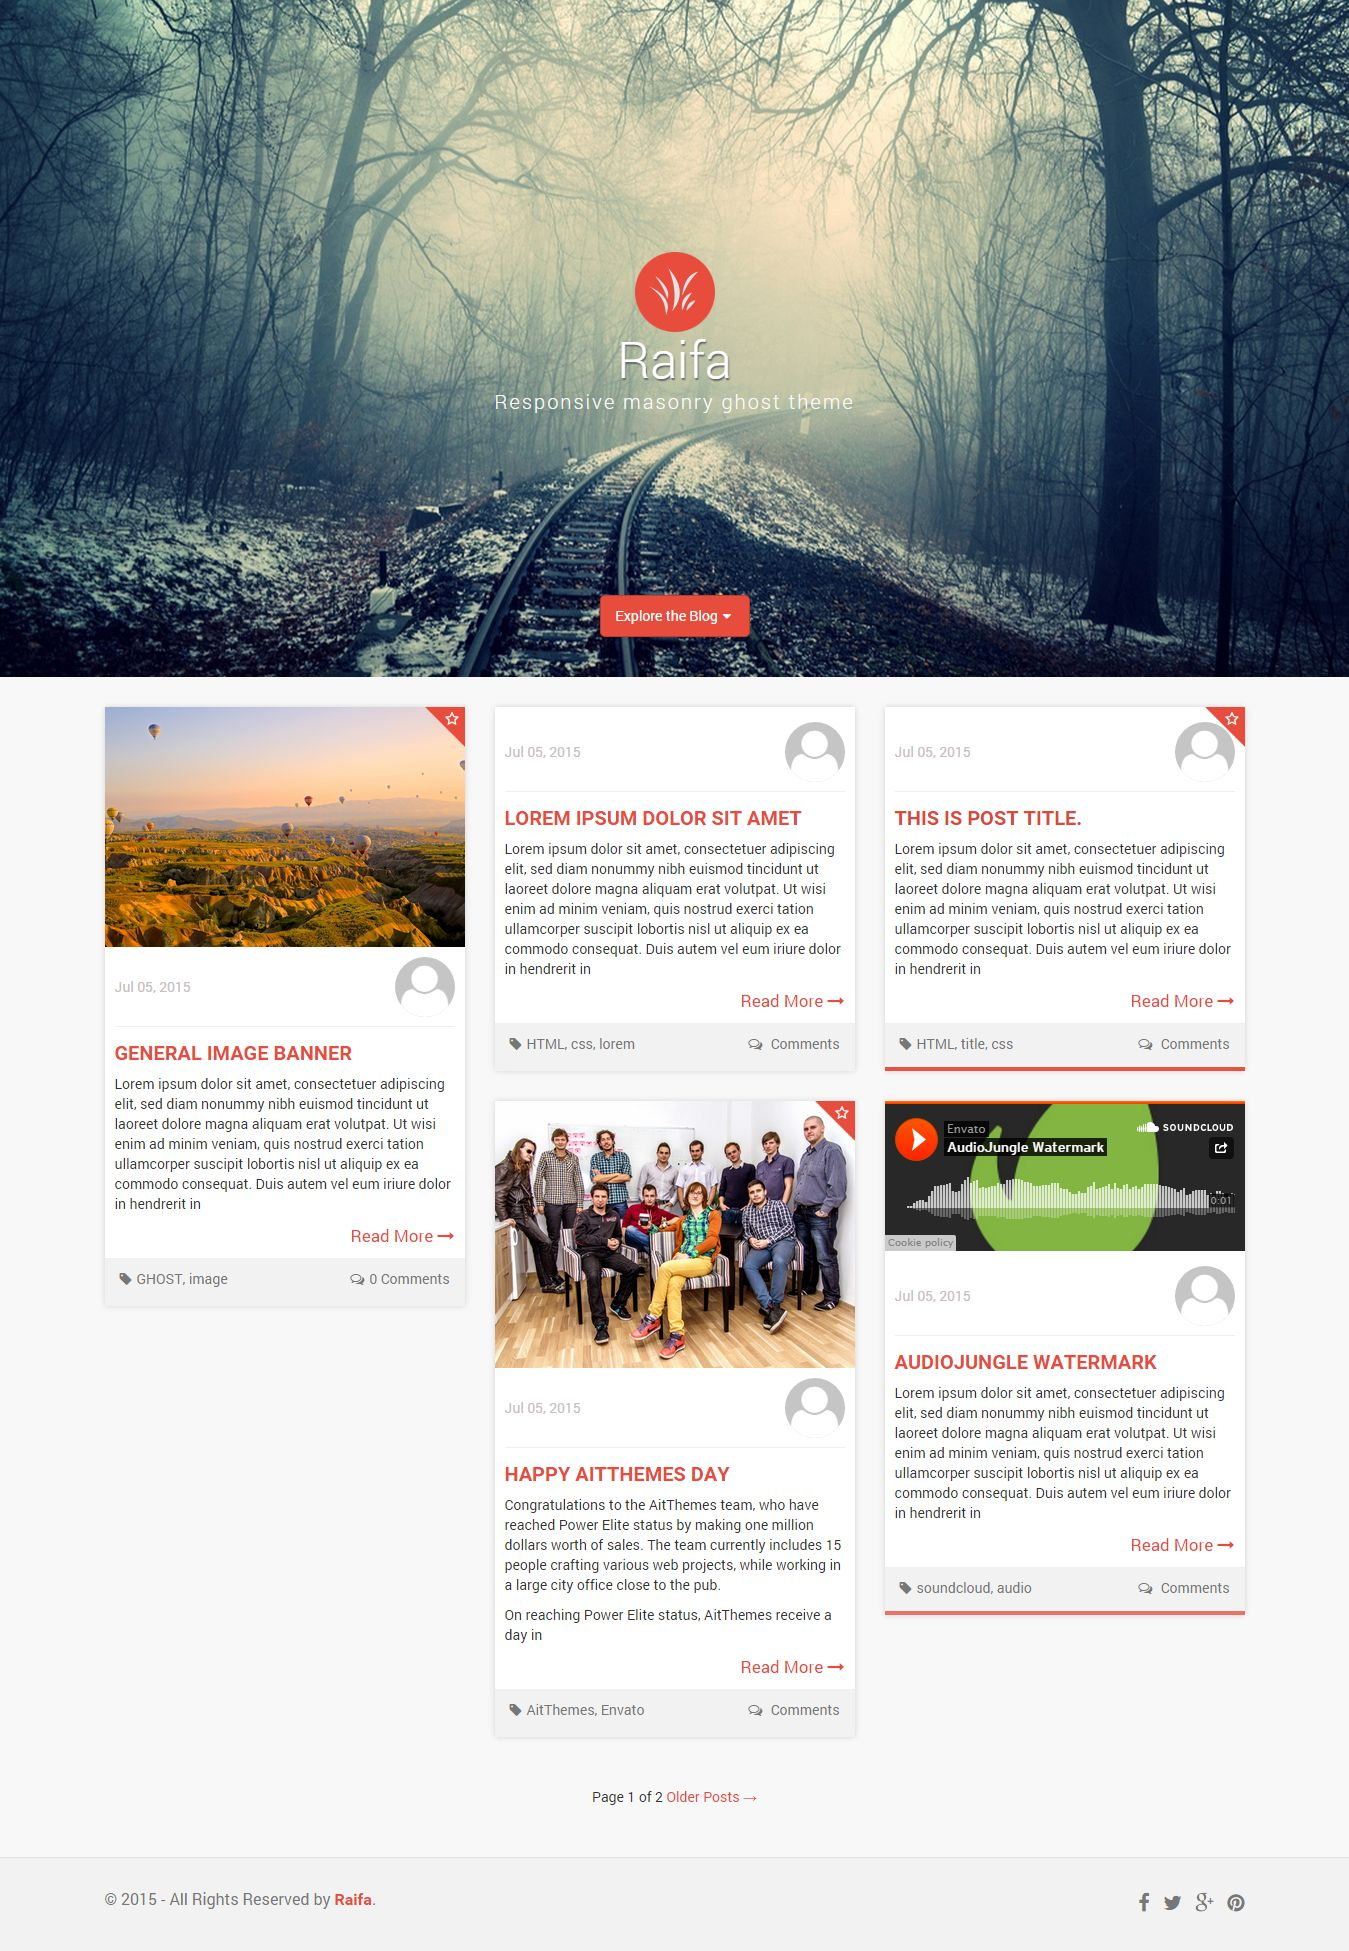 Raifa - Responsive Masonary Ghost Theme Screenshot 2